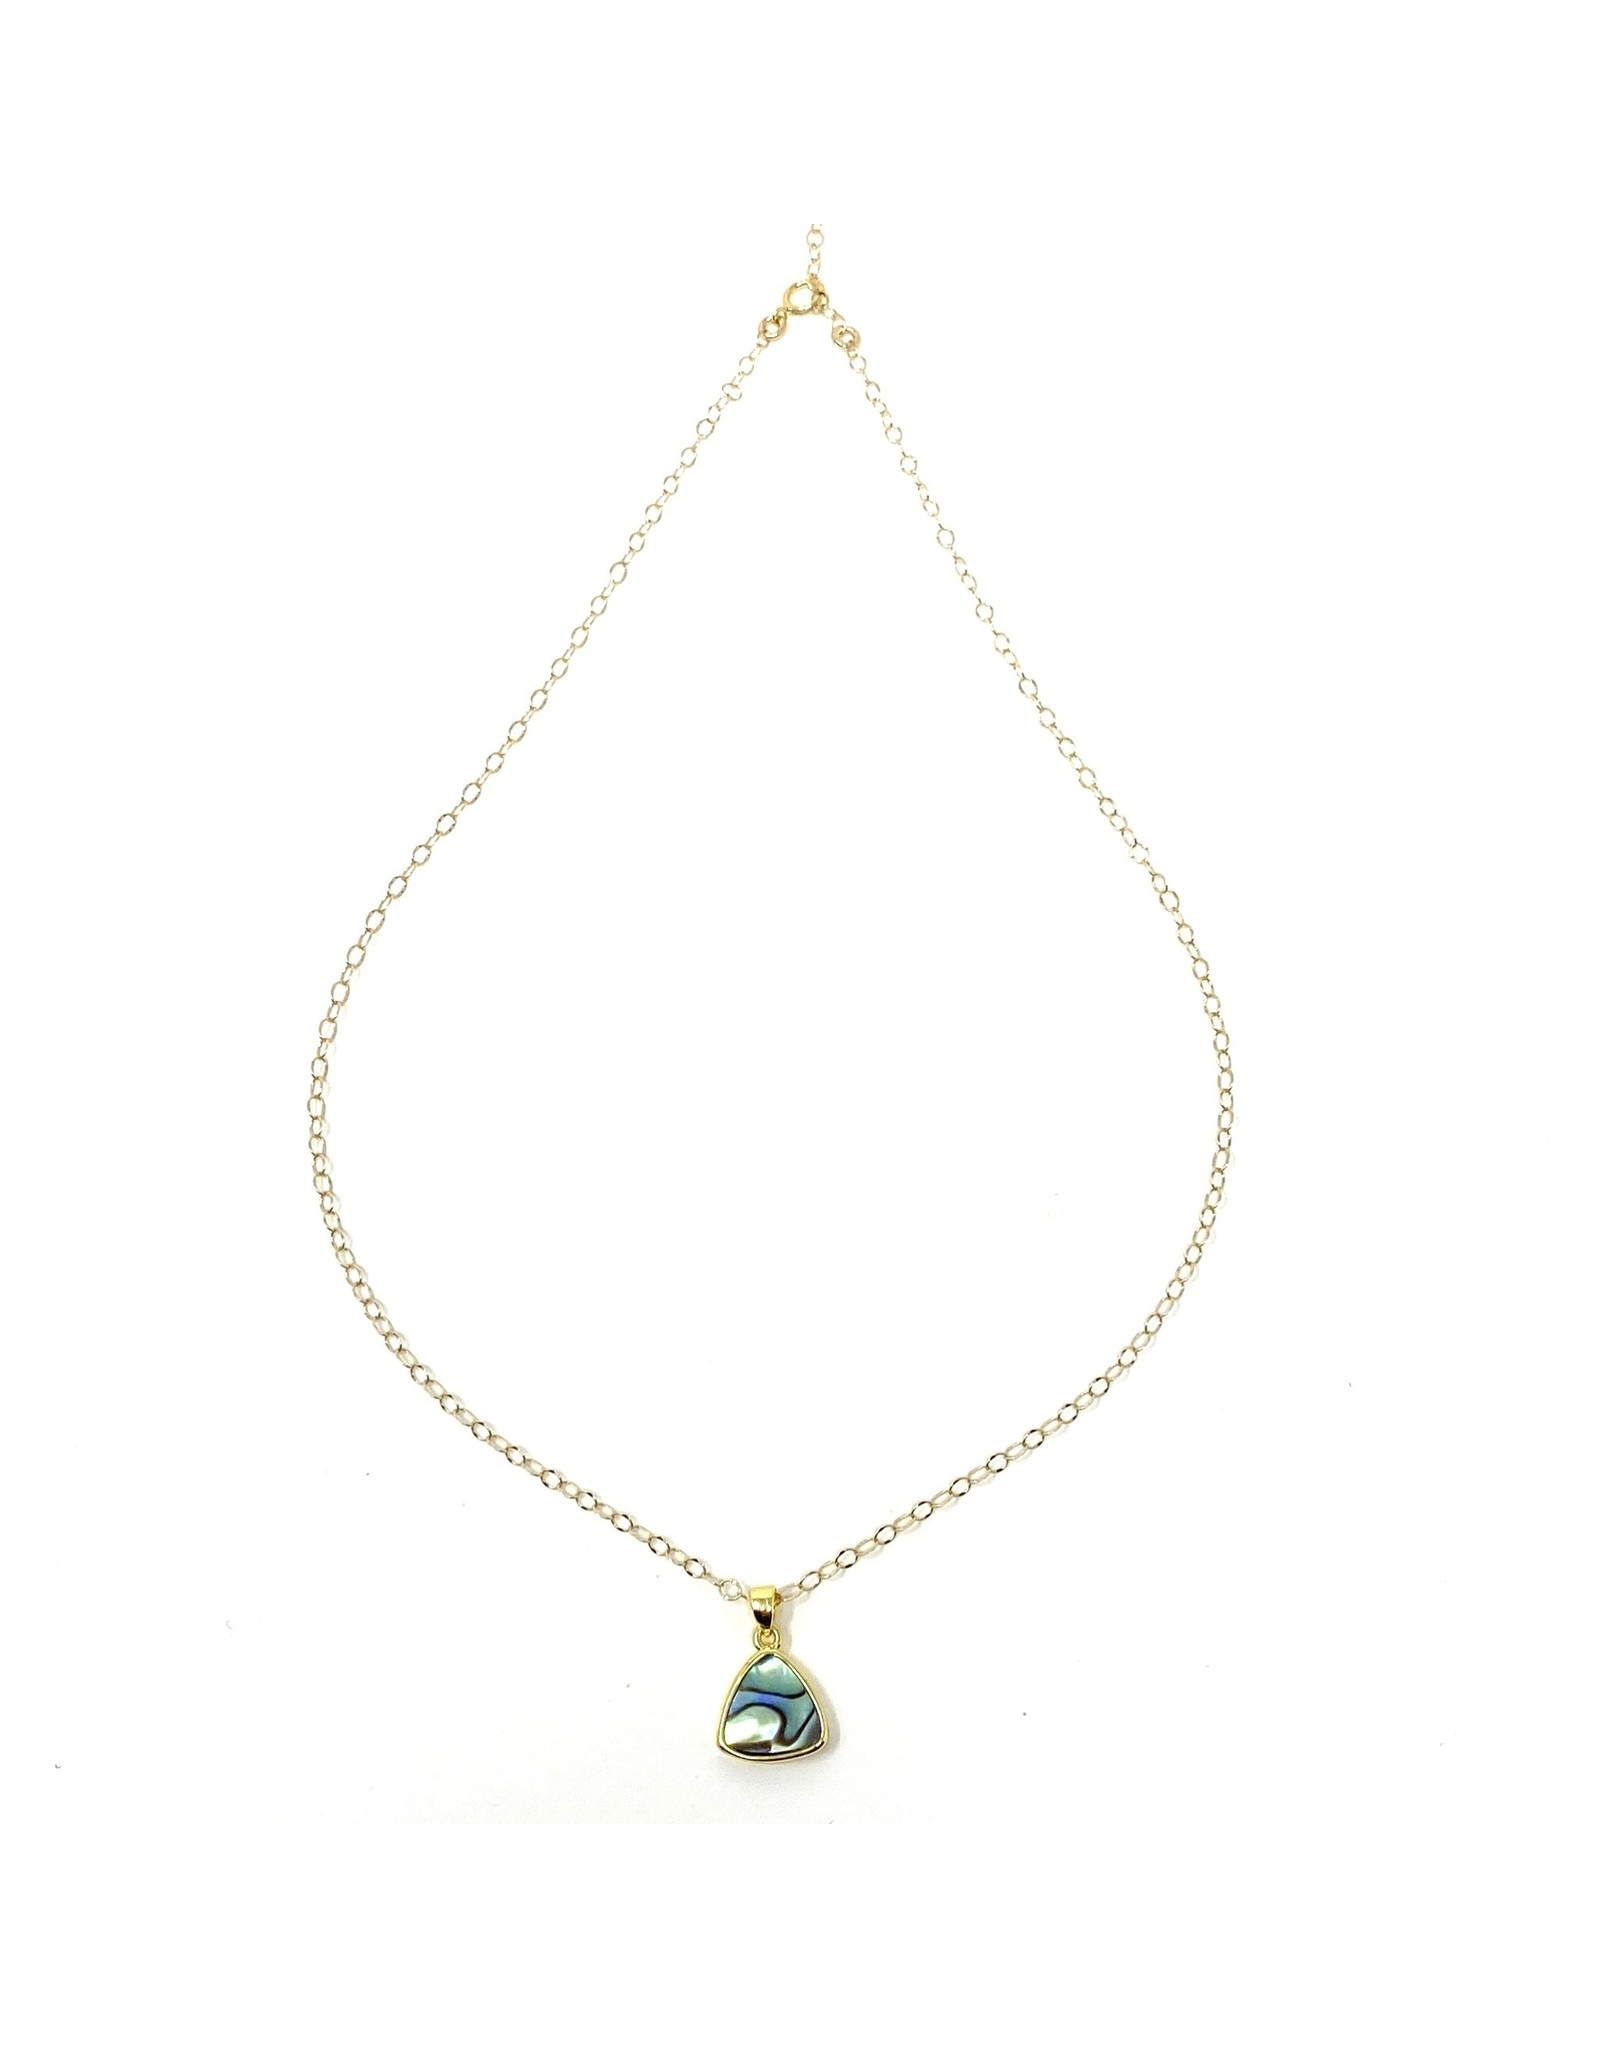 Abalone Charm on Gold Filled Chain